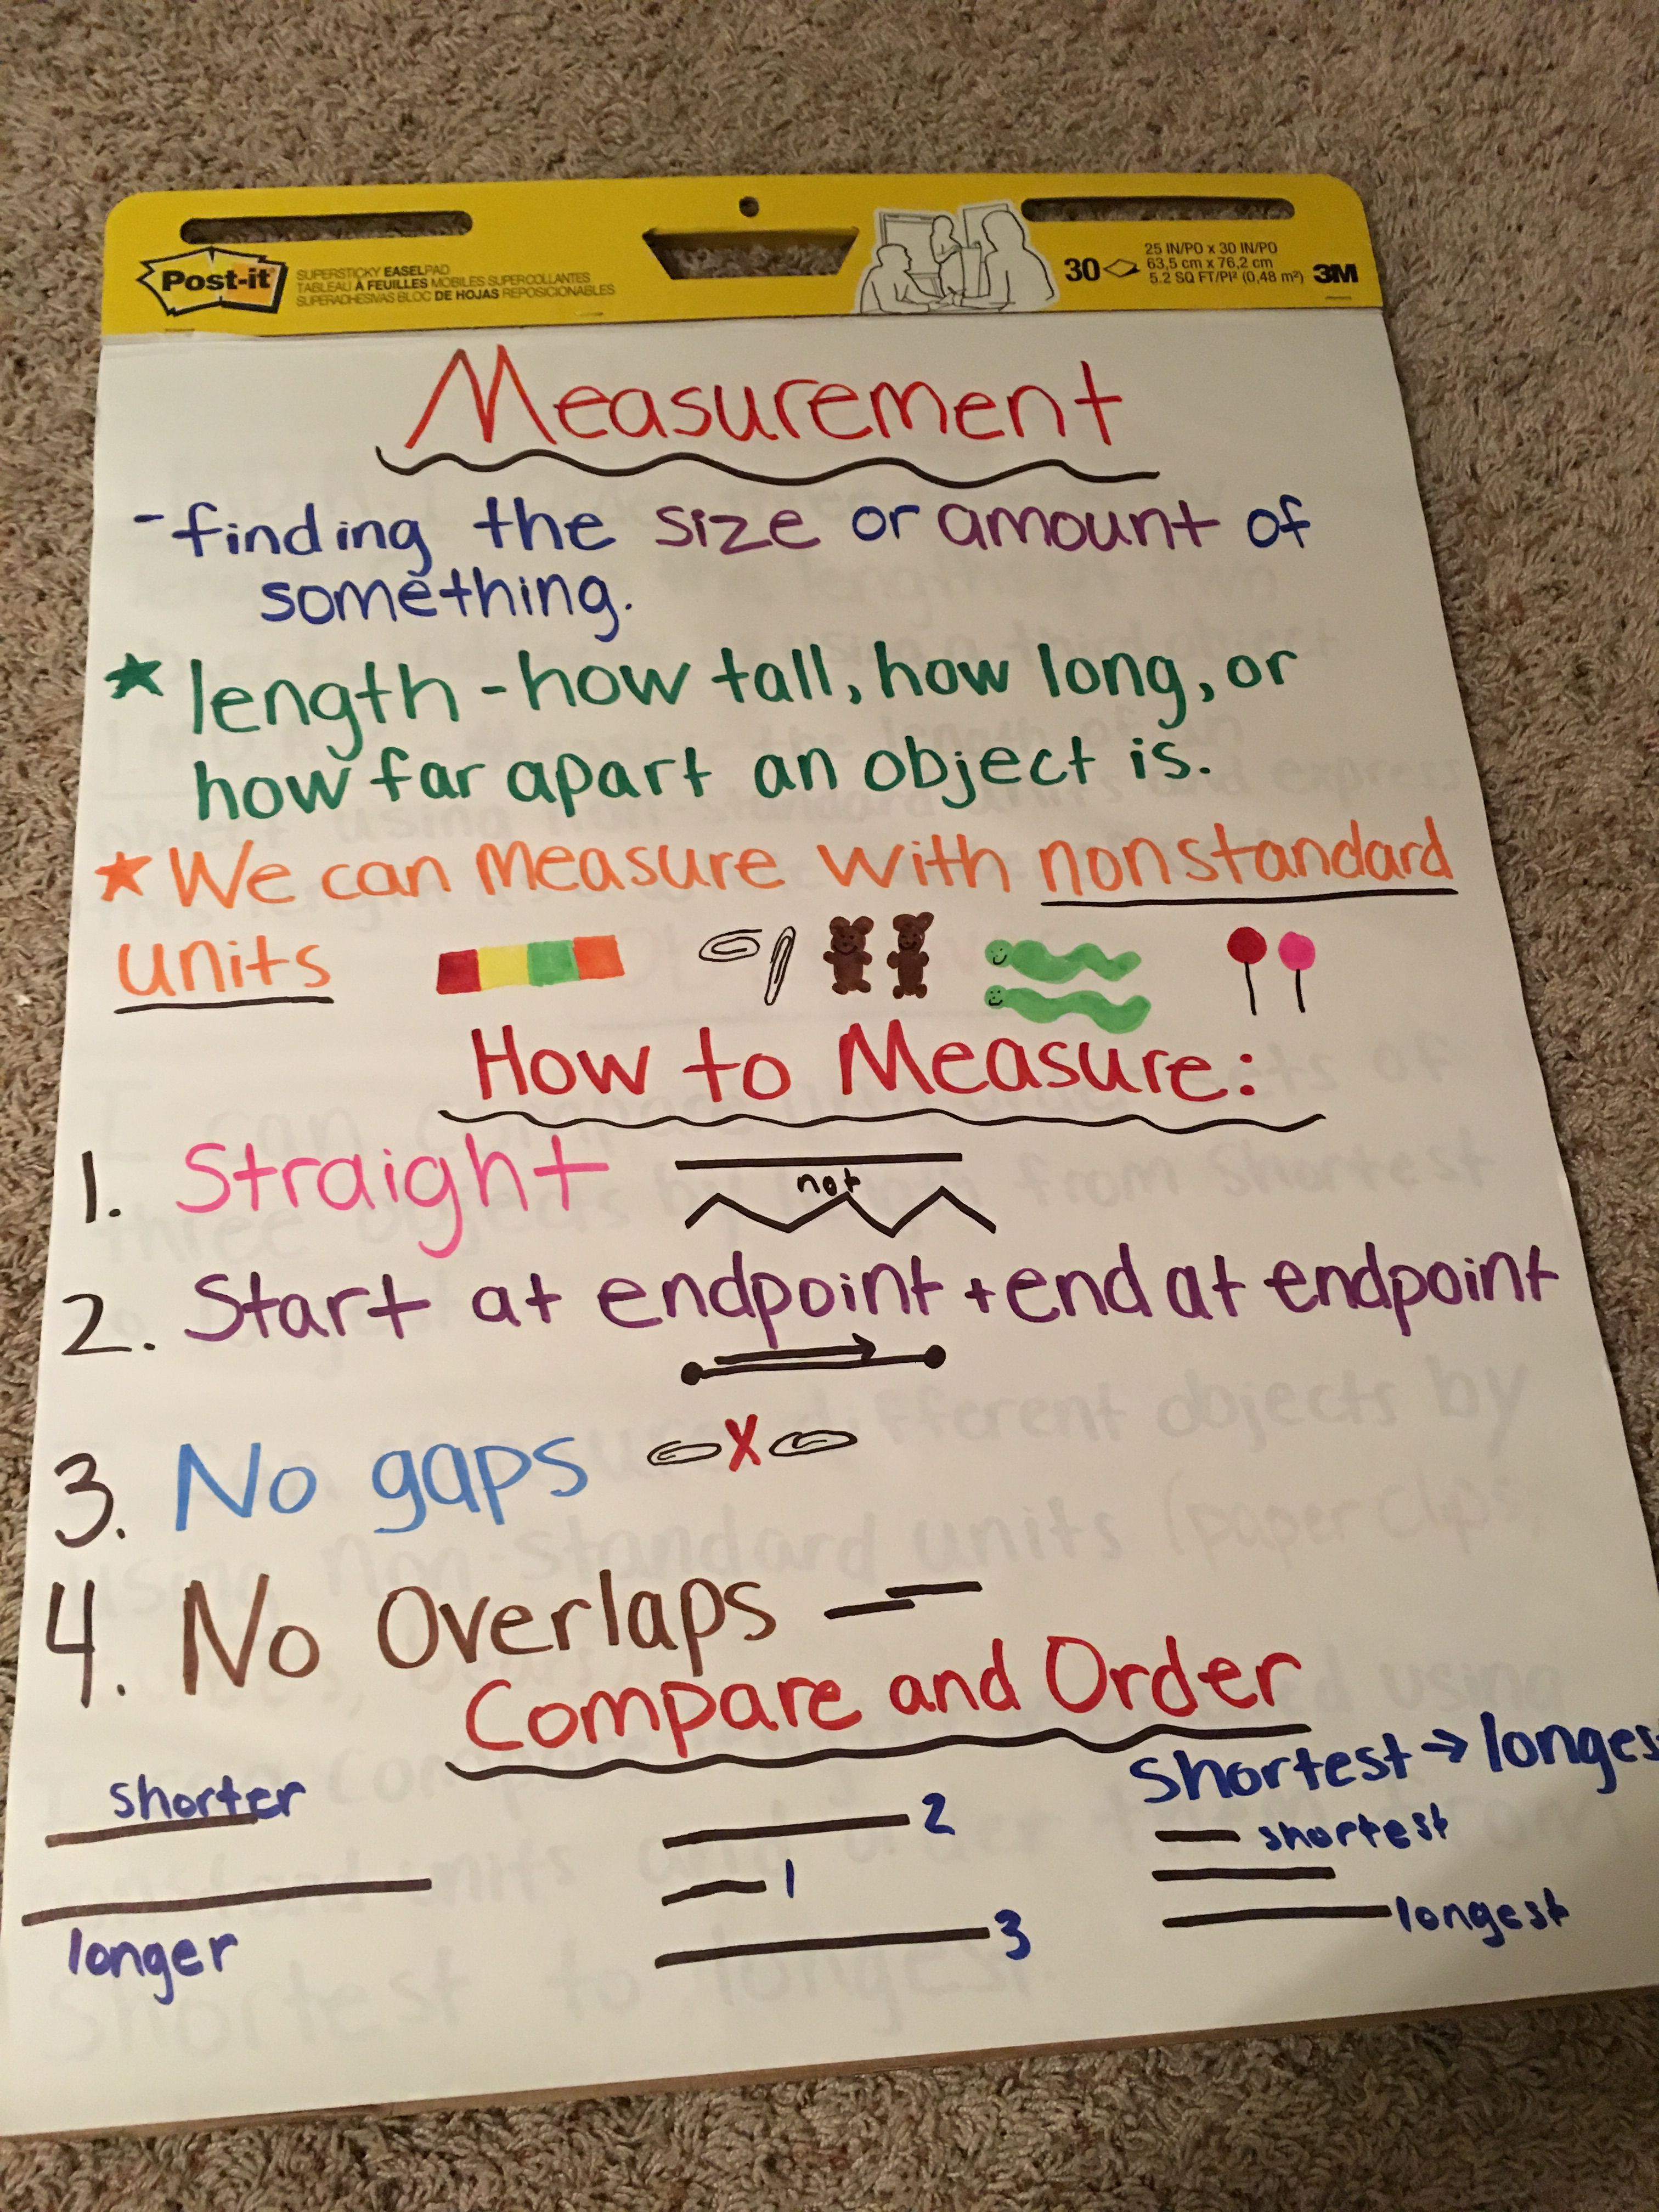 Anchor Chart I Created For An Introduction To Measuring With Nonstandard Units